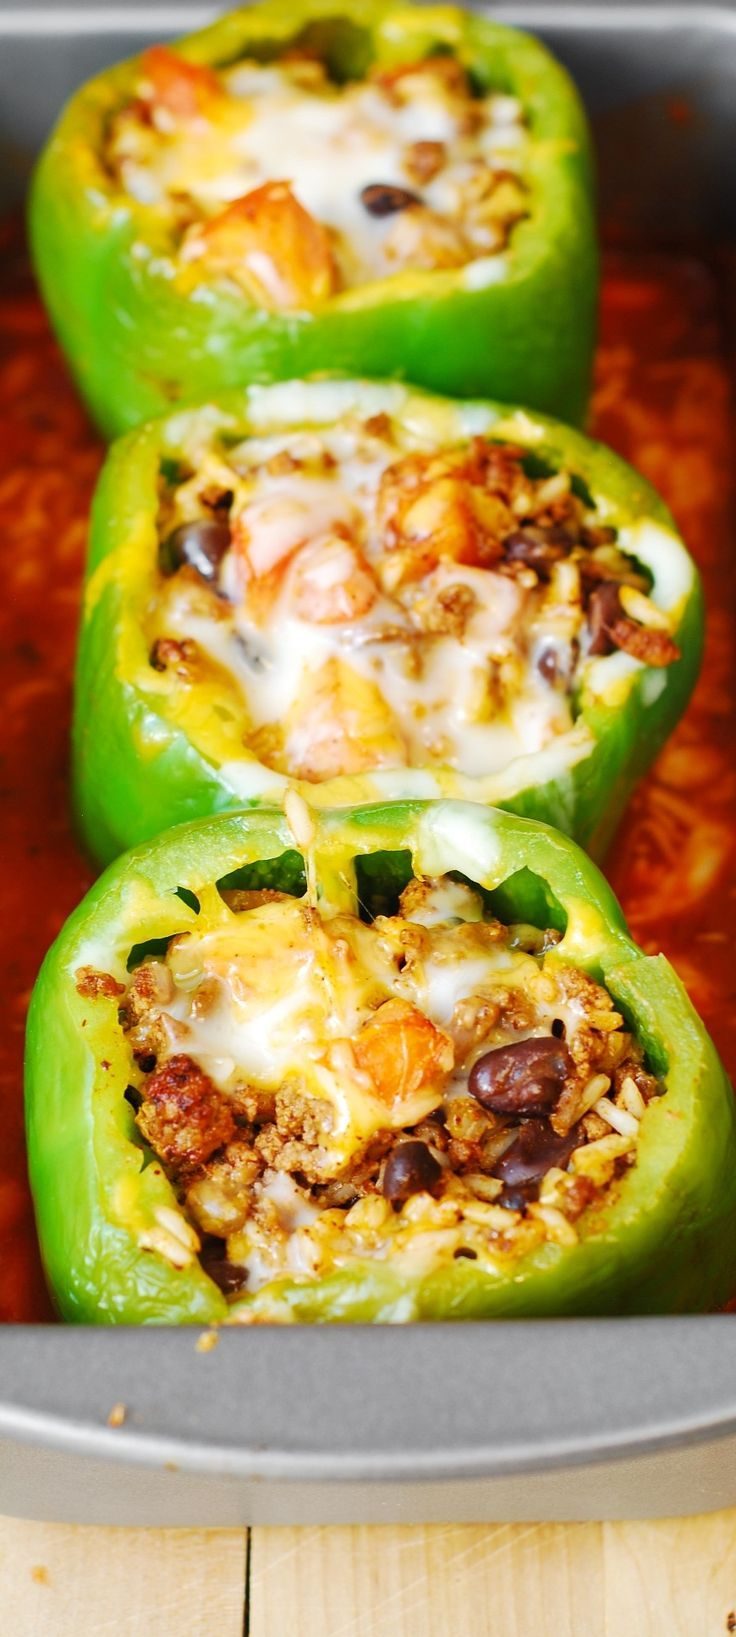 Mexican Stuffed Peppers #glutenfree #vegetarian #healthy